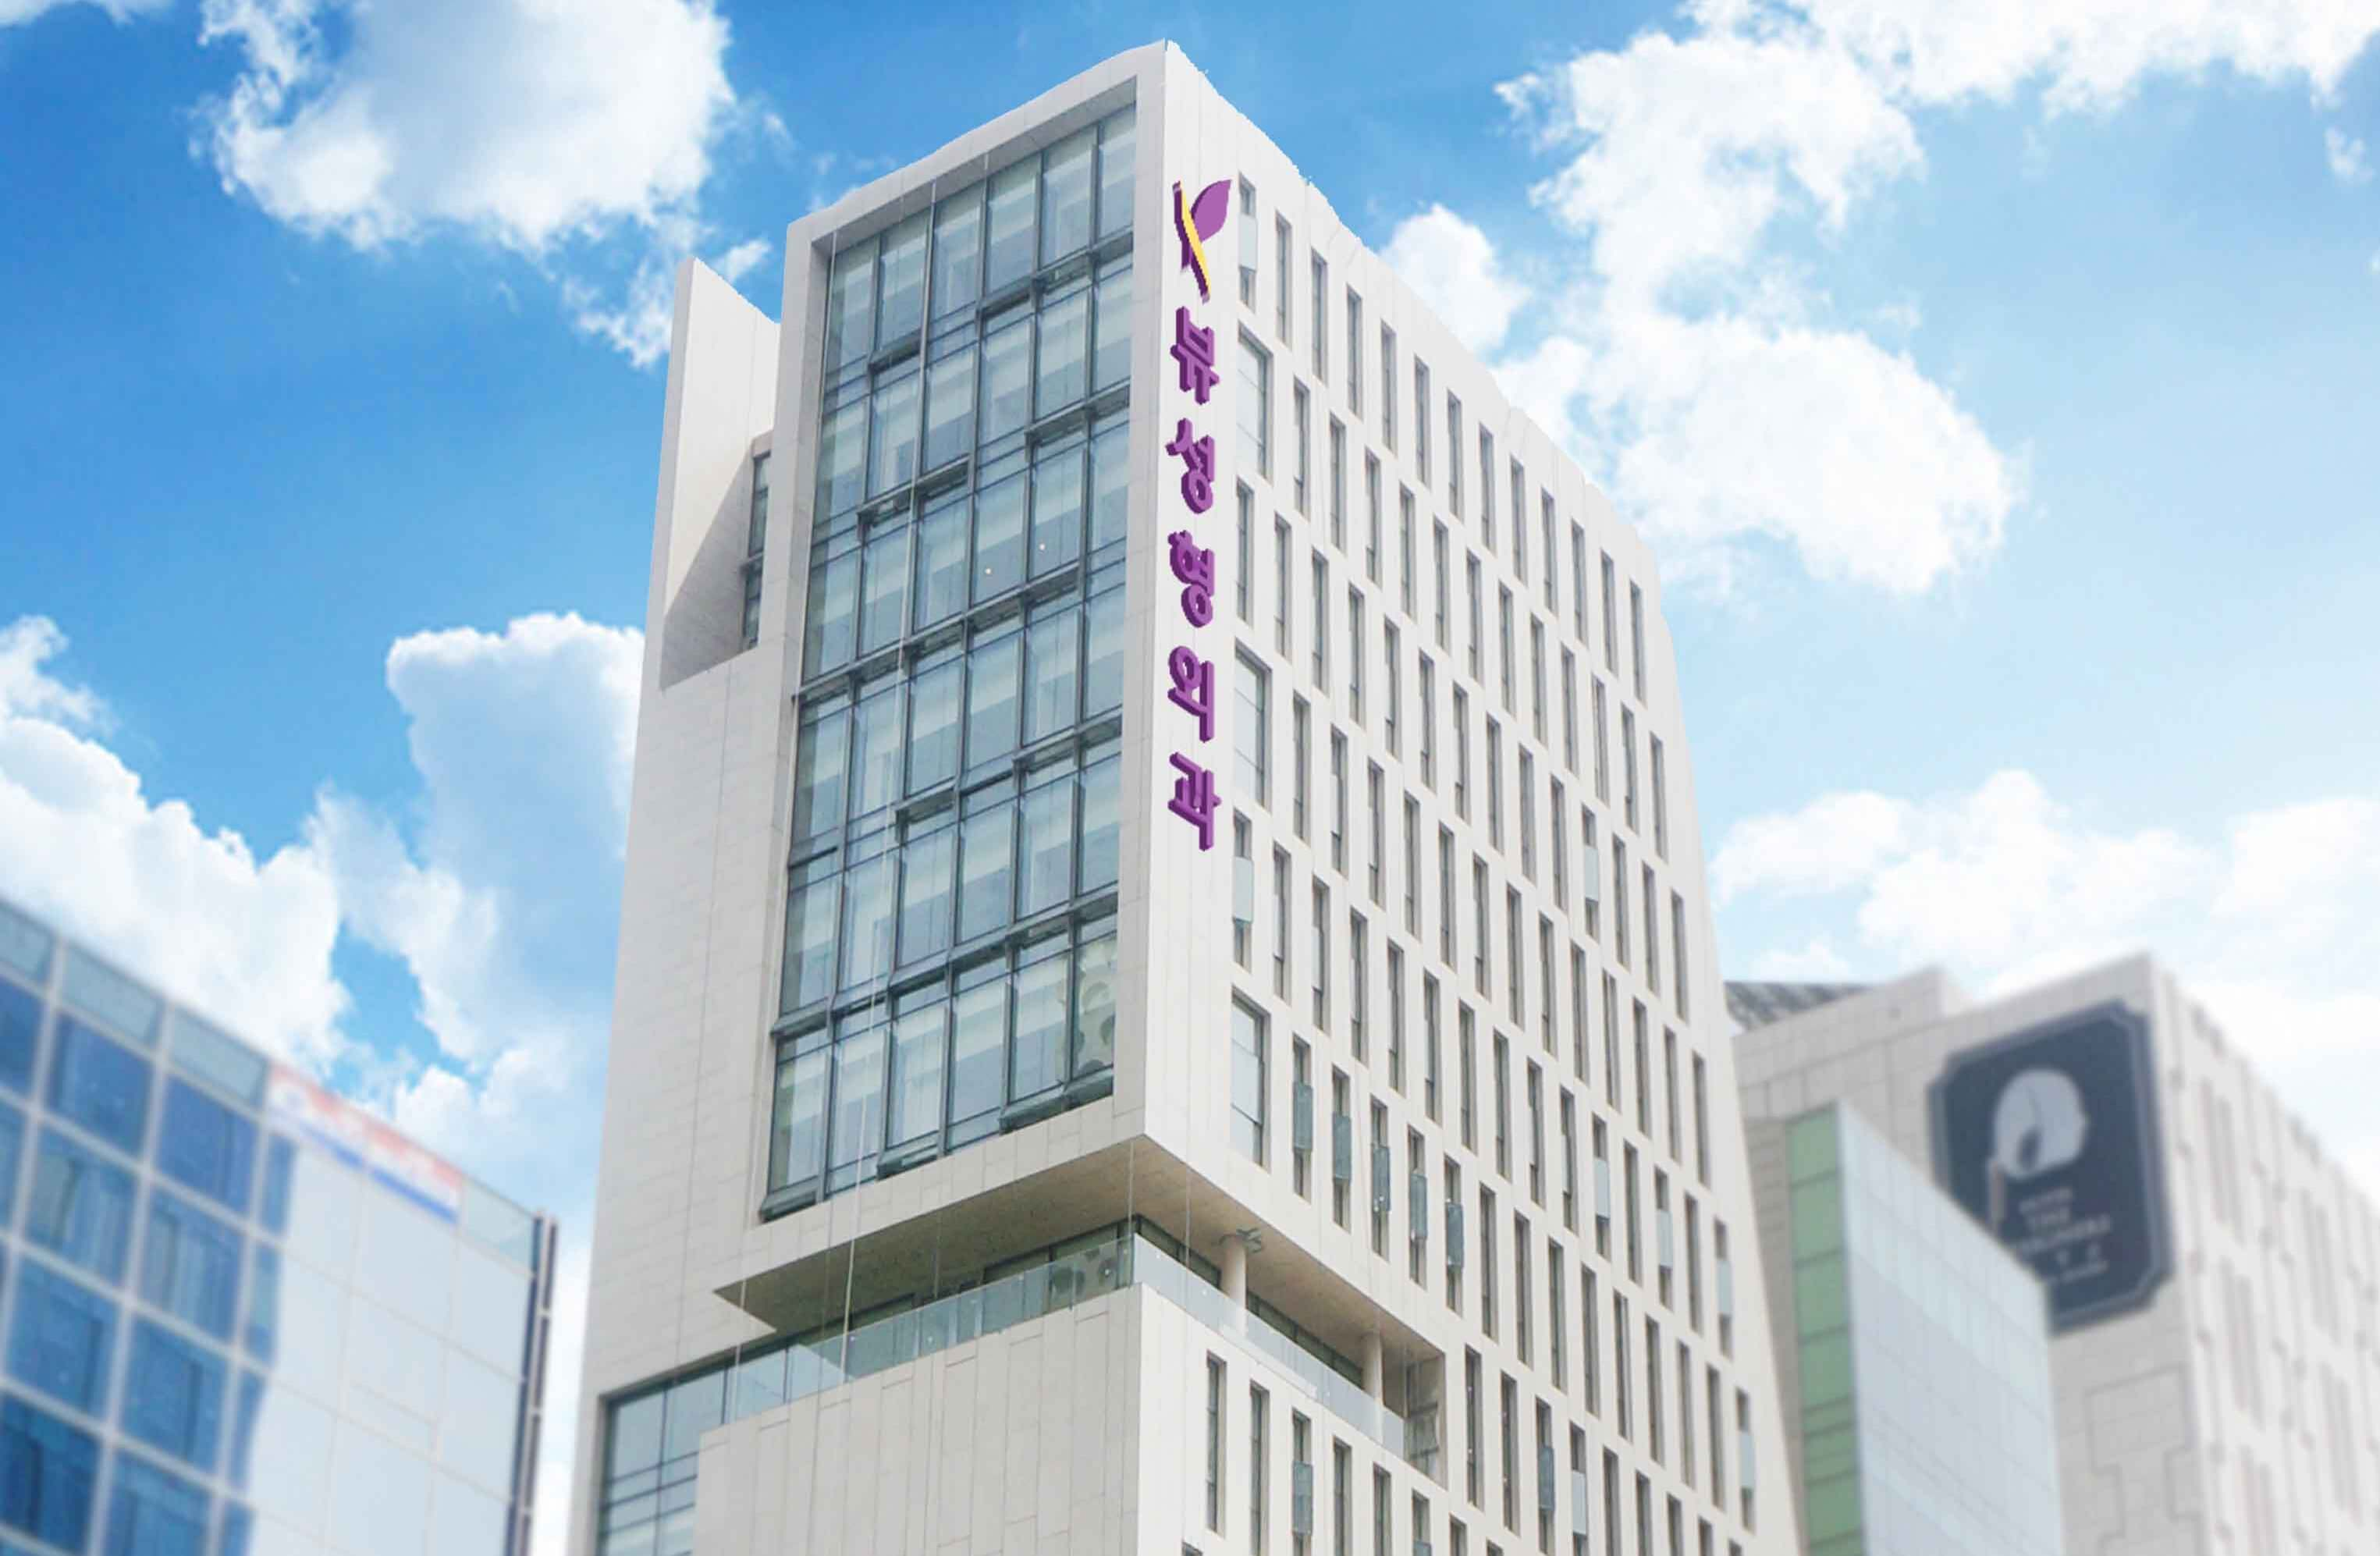 View Plastic Surgery Hospital in Republic of Korea - 1 review